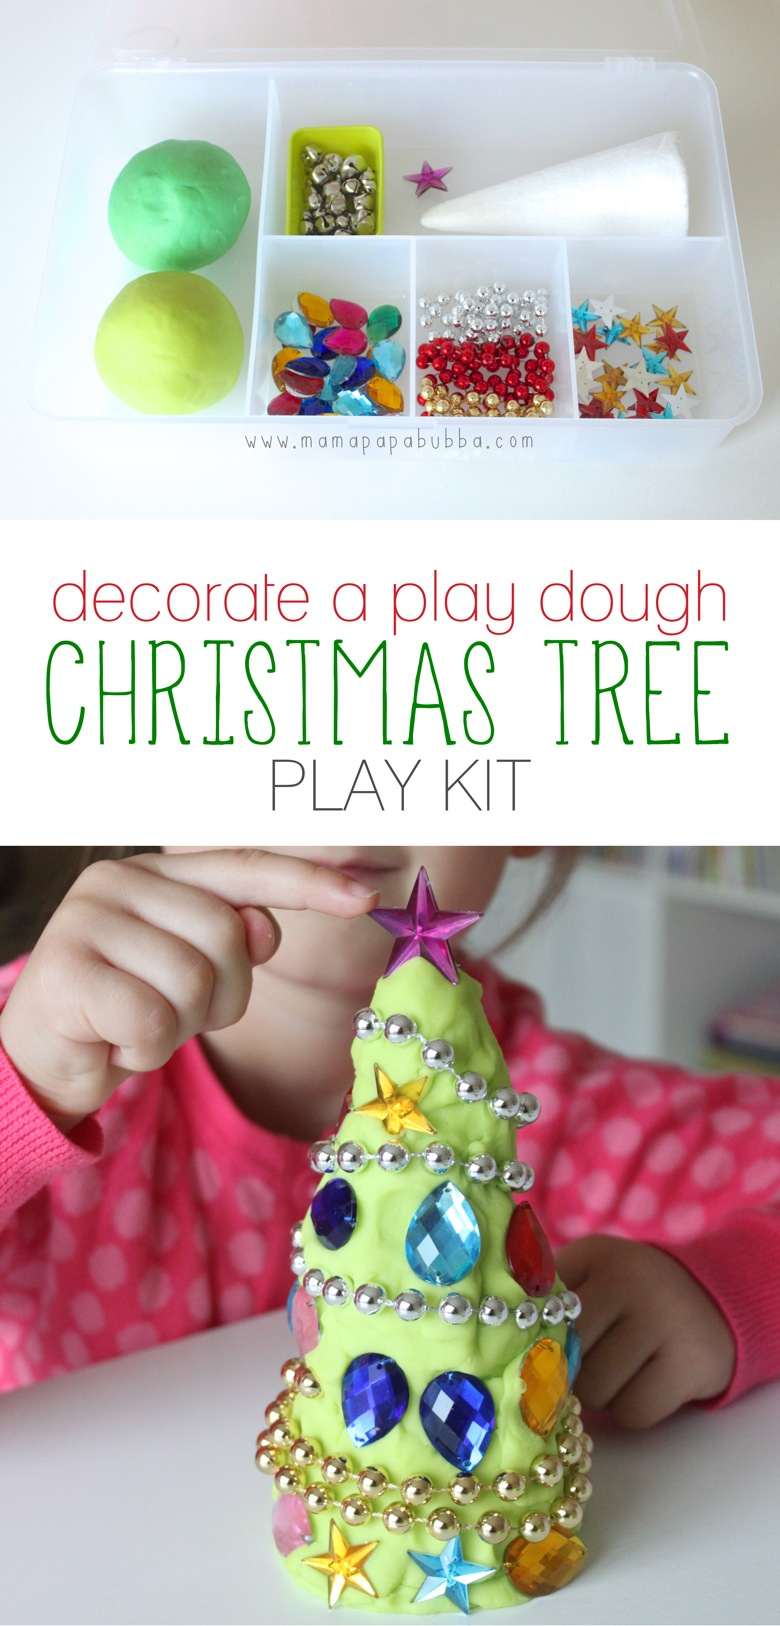 Decorate a Play Dough Christmas Tree Play Kit | Mama Papa Bubba